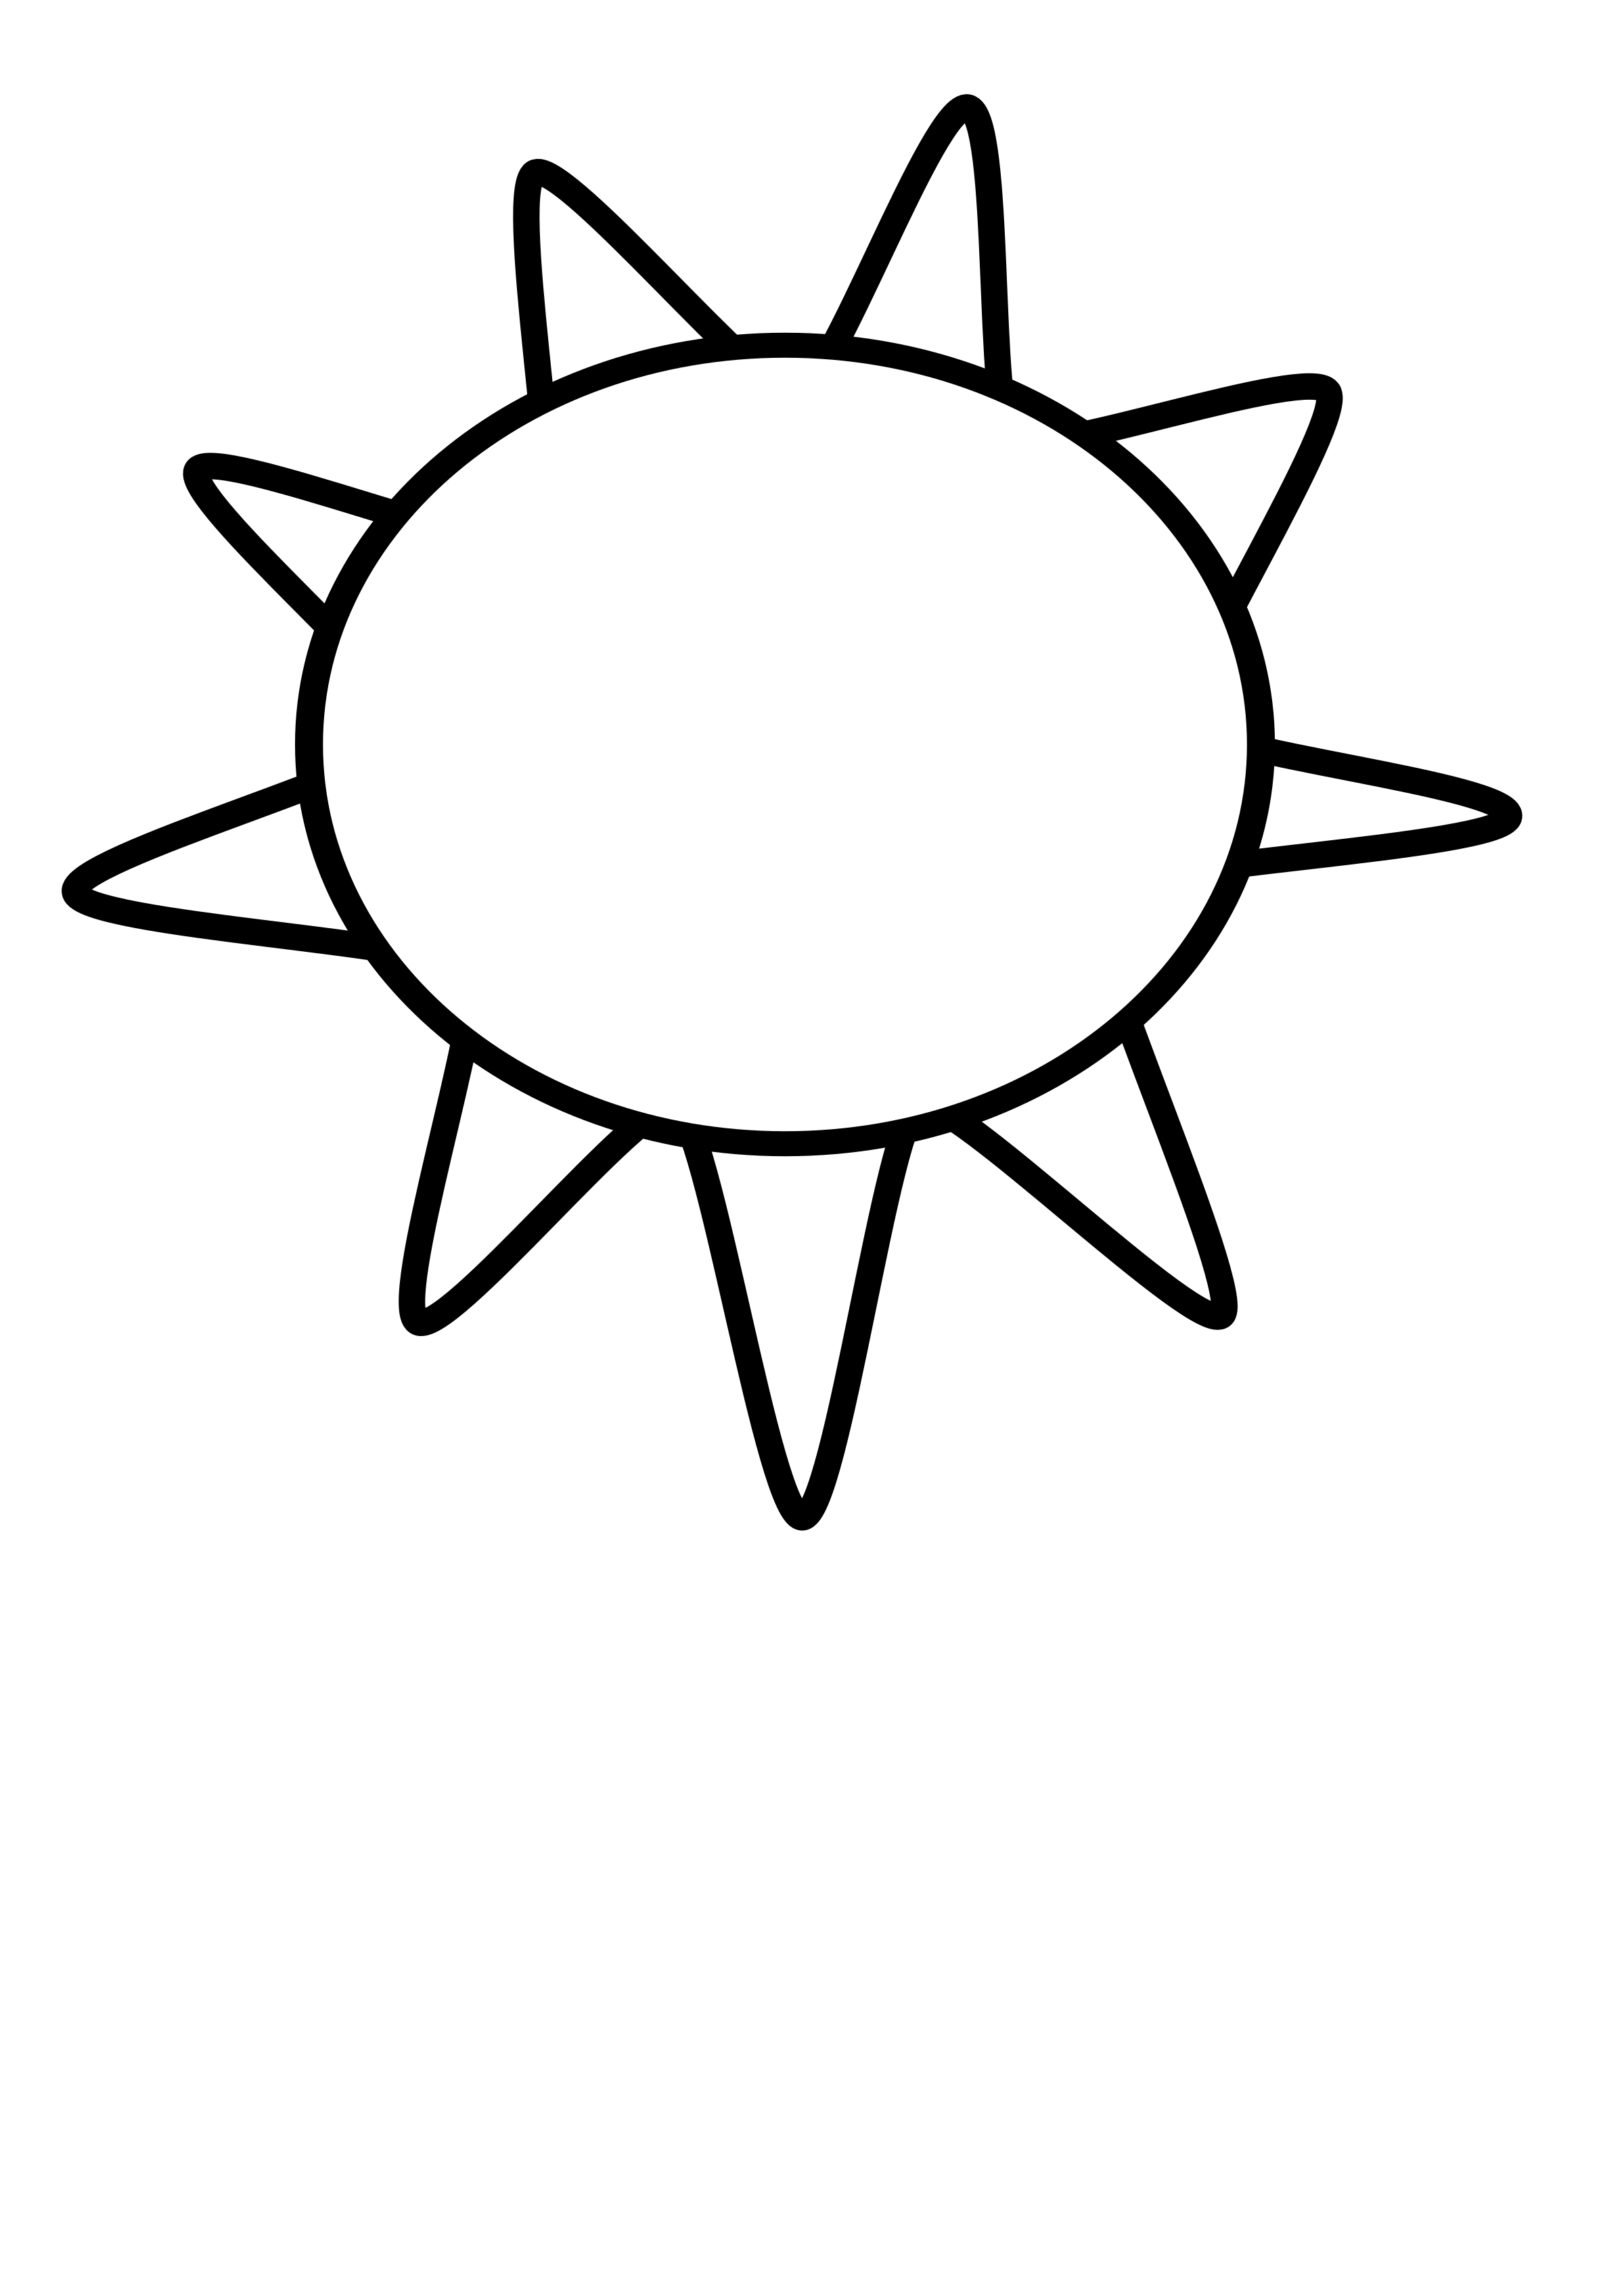 Sun line clipart vector black and white library Clipart - Sun Outline vector black and white library